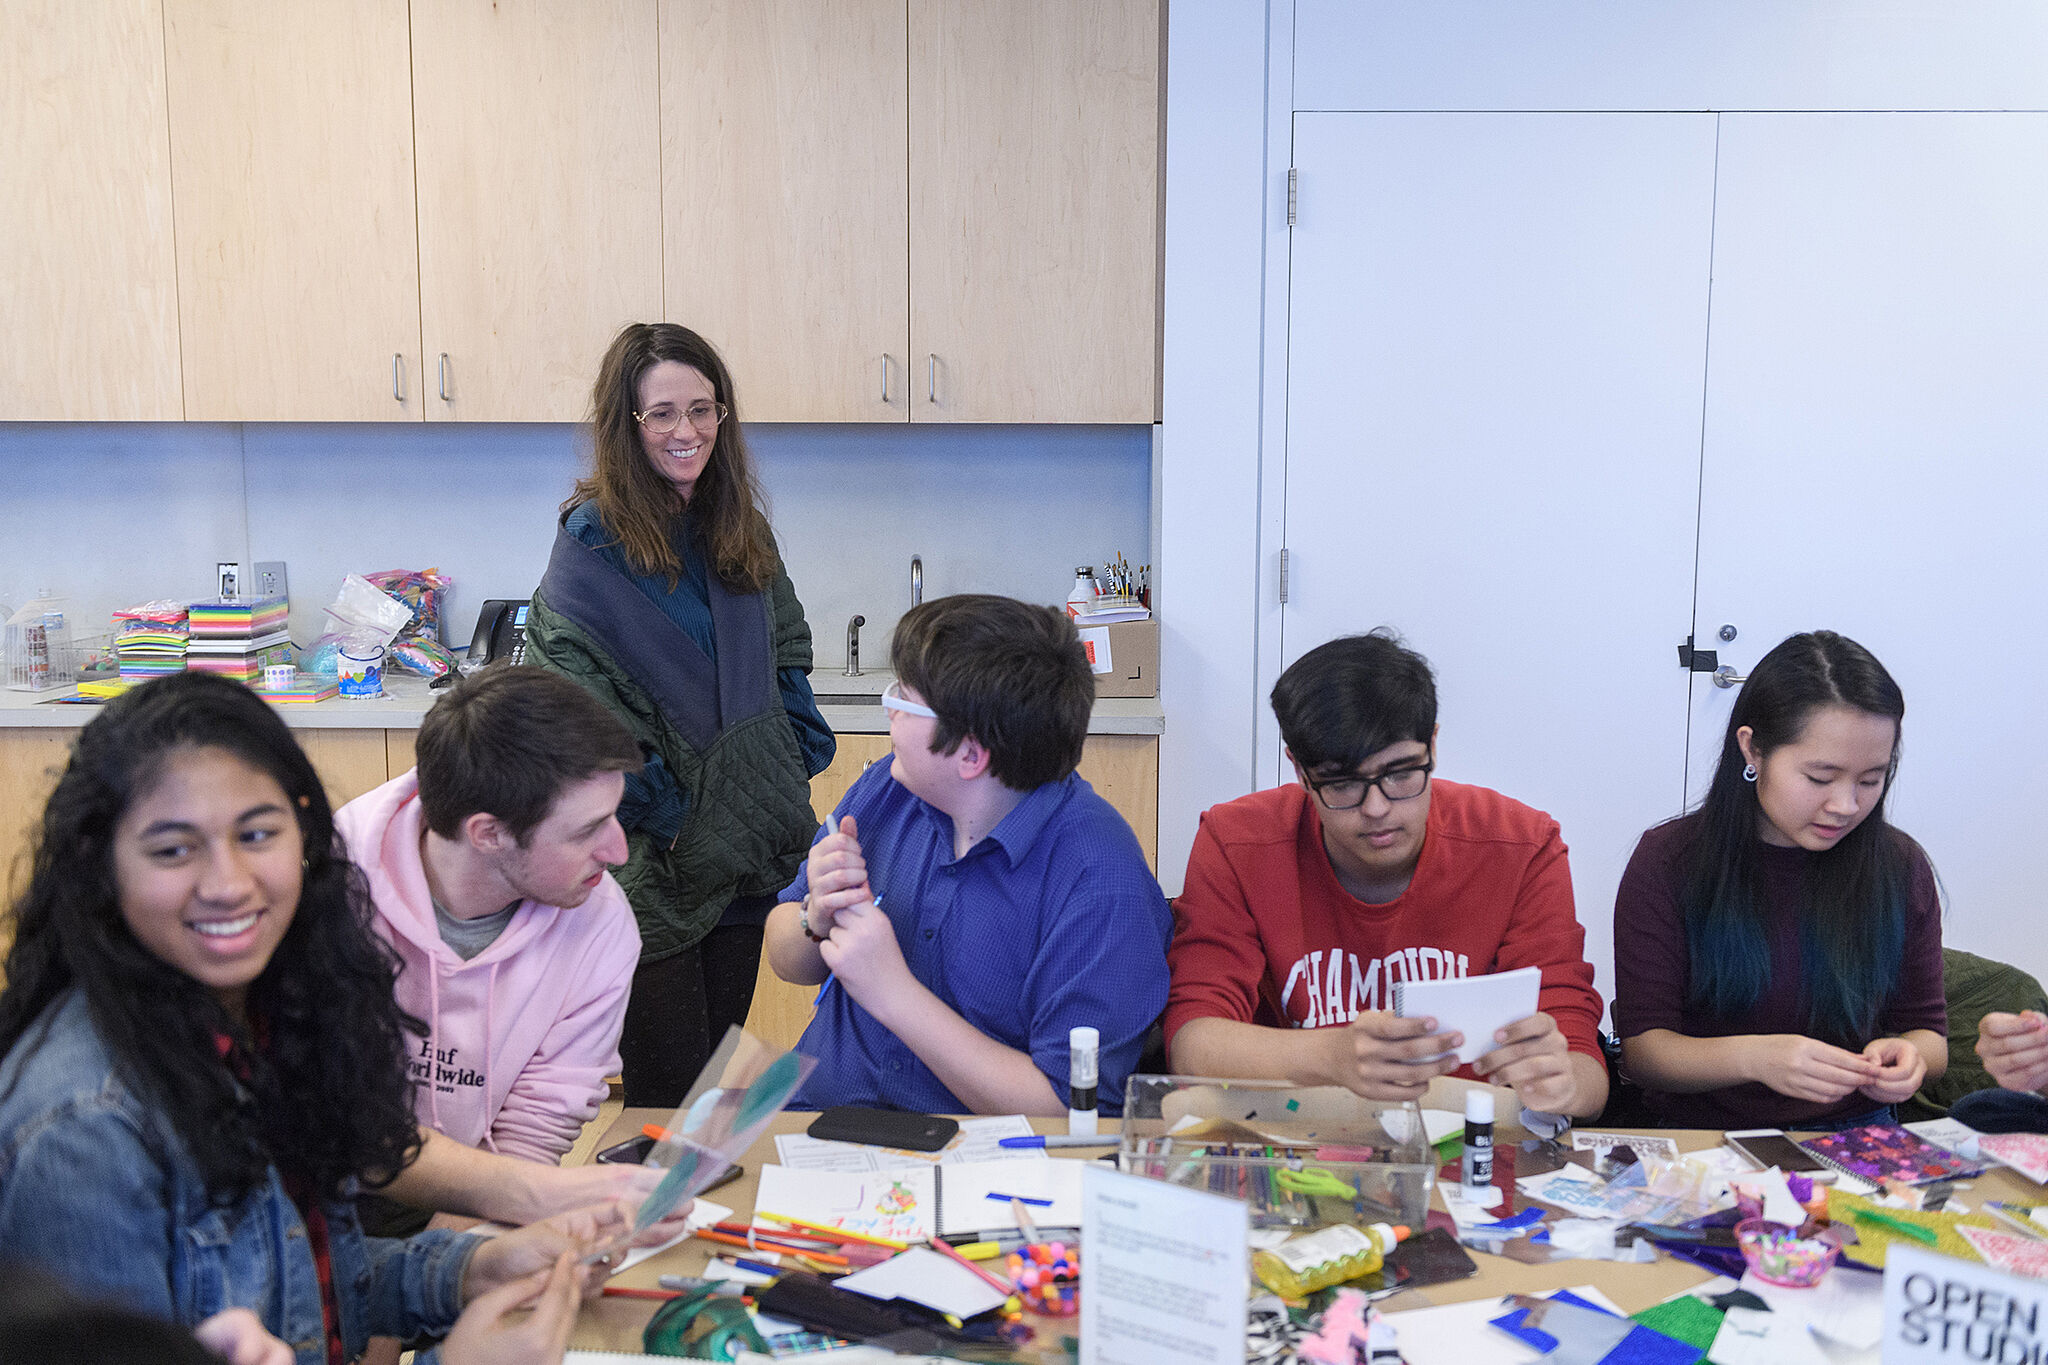 A photo of a group of teens working on art projects at a table, while Laura Owens smiles and talks with one of them.